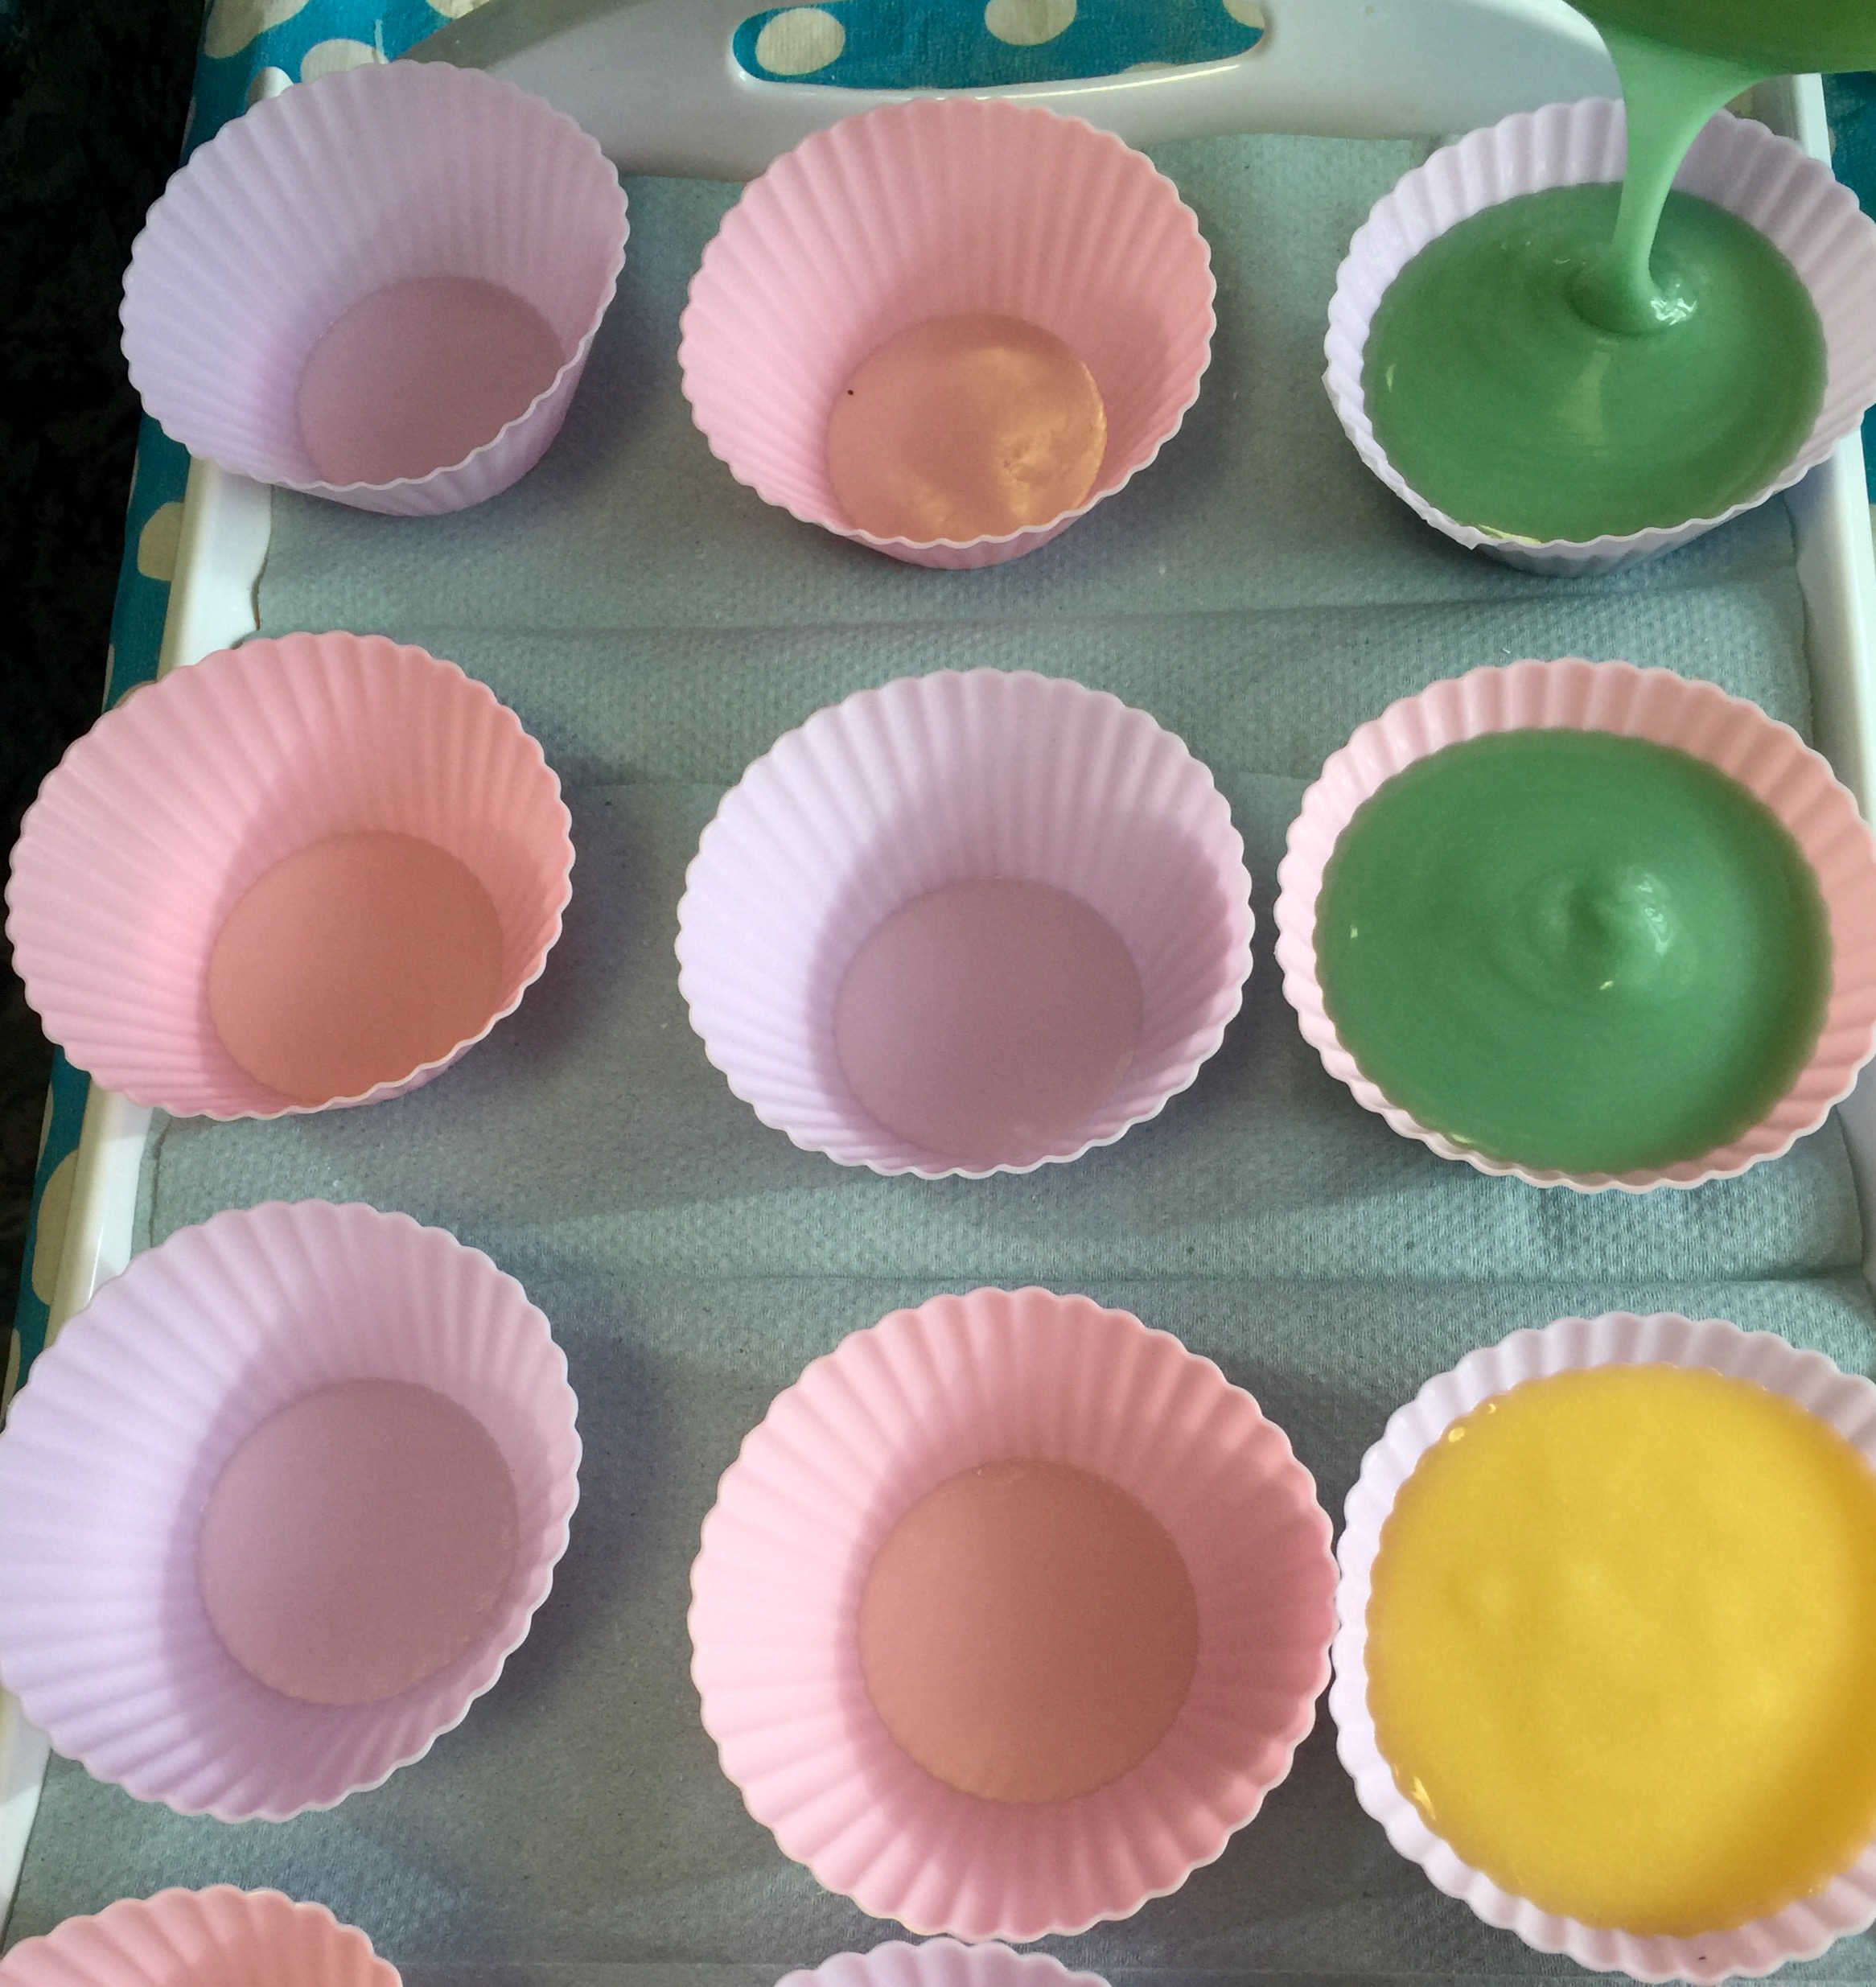 Soaps from week 2 with yellow and green dyes